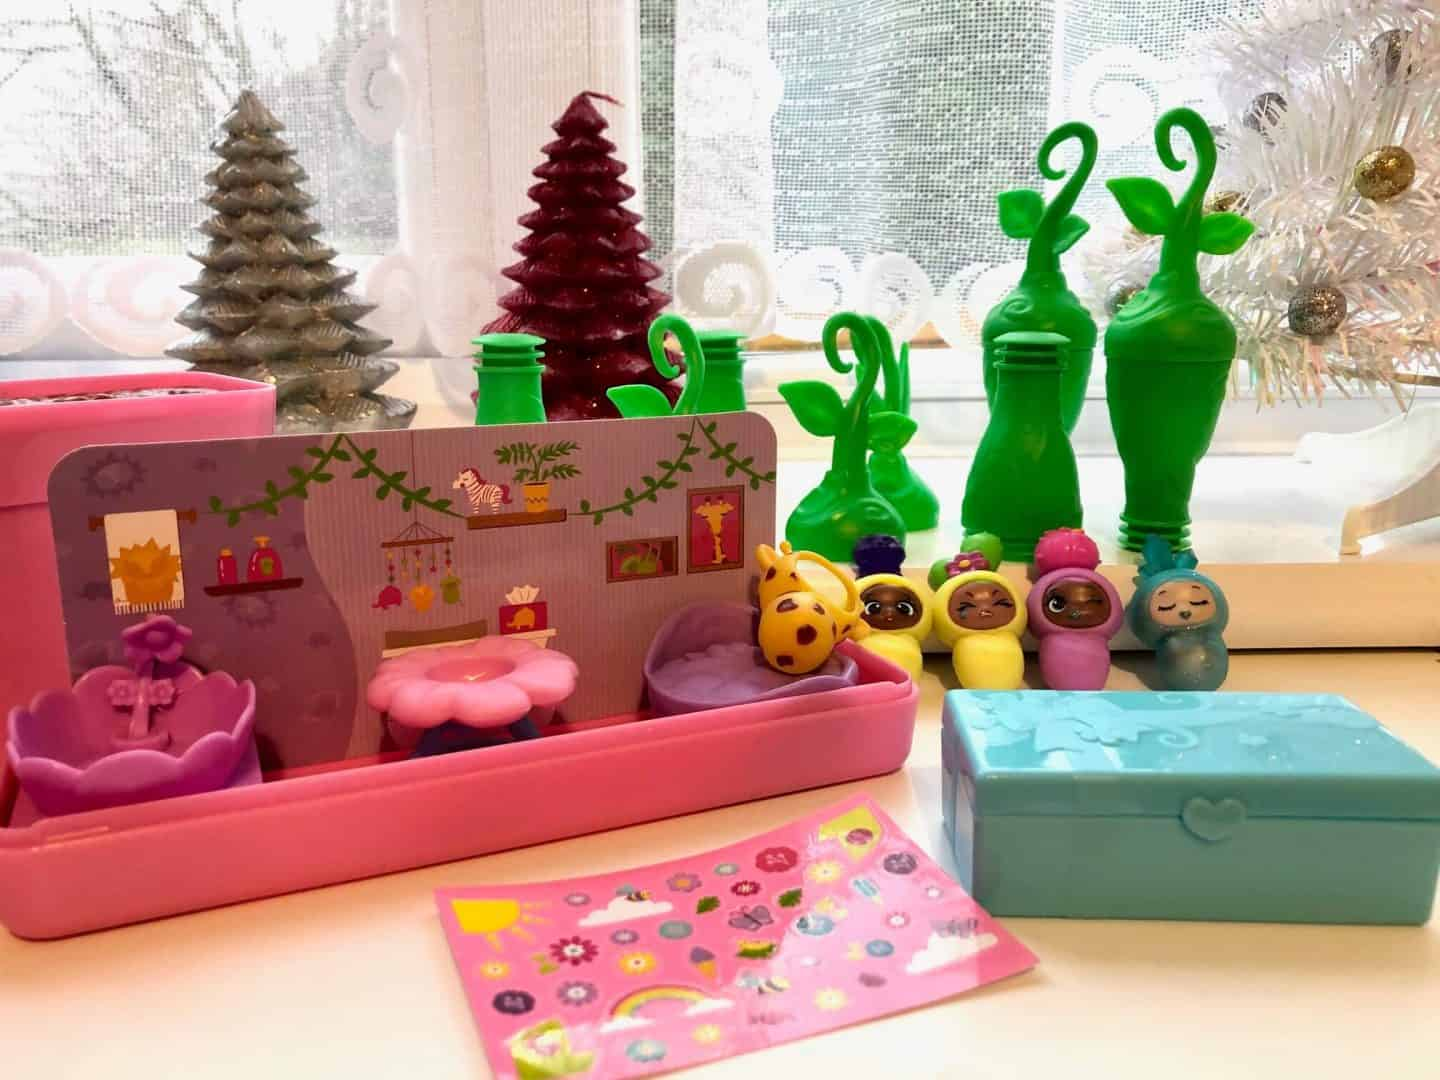 Blume Baby Pop Baby nursery and accessories